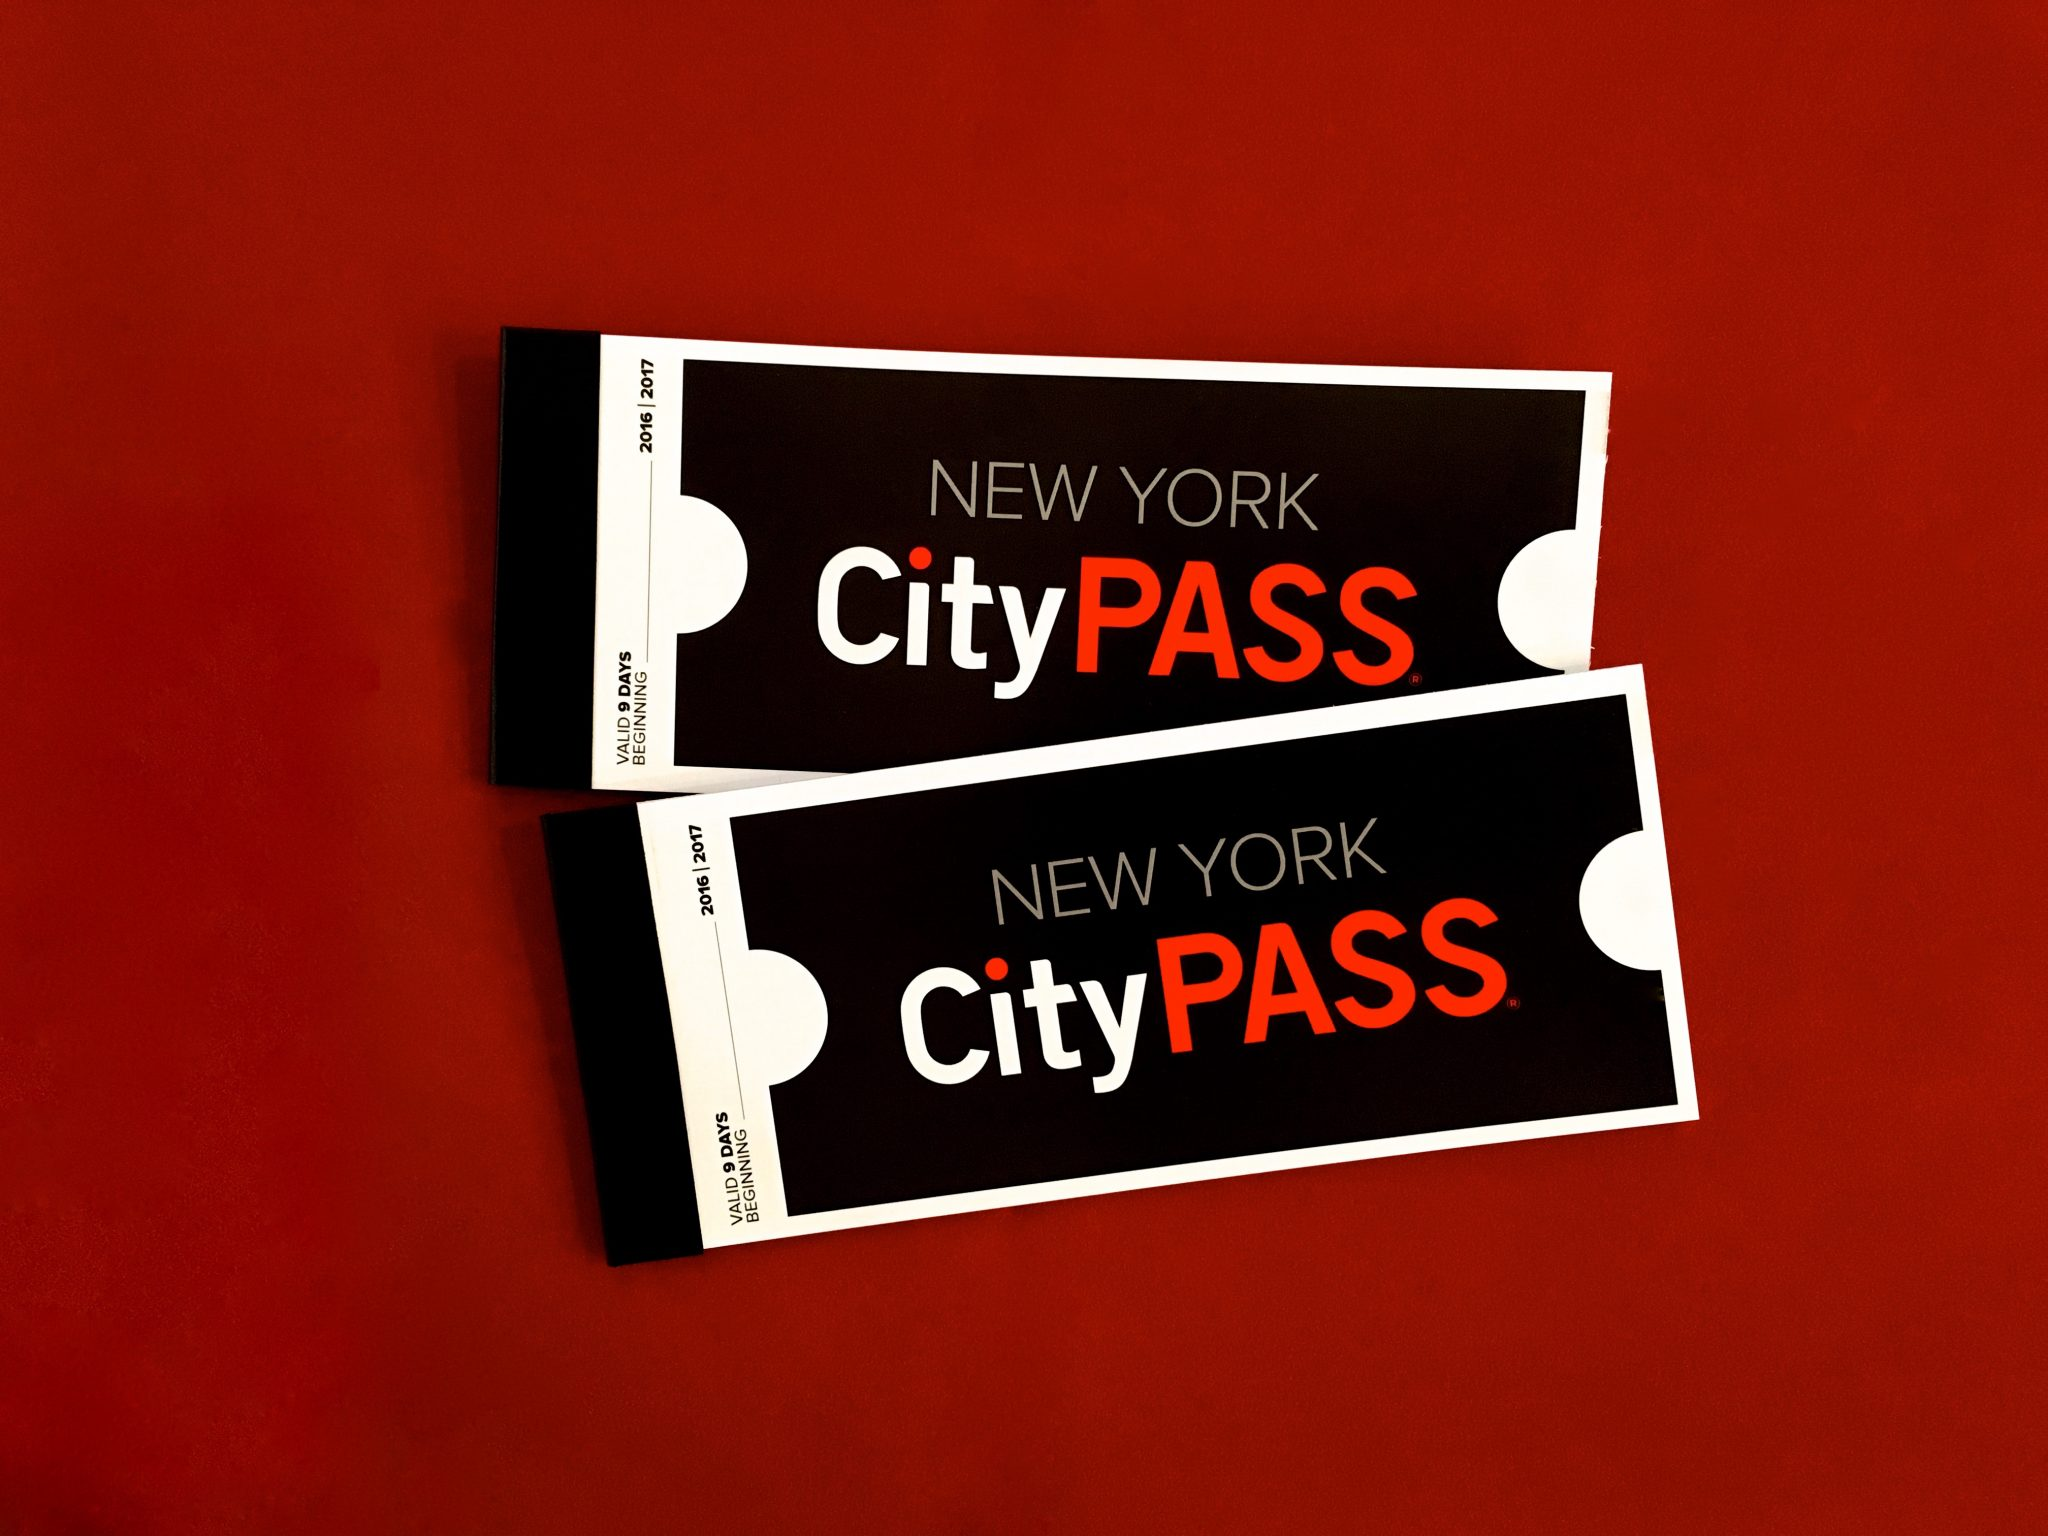 Stocking stuffers like CityPass inspire a traveling family.